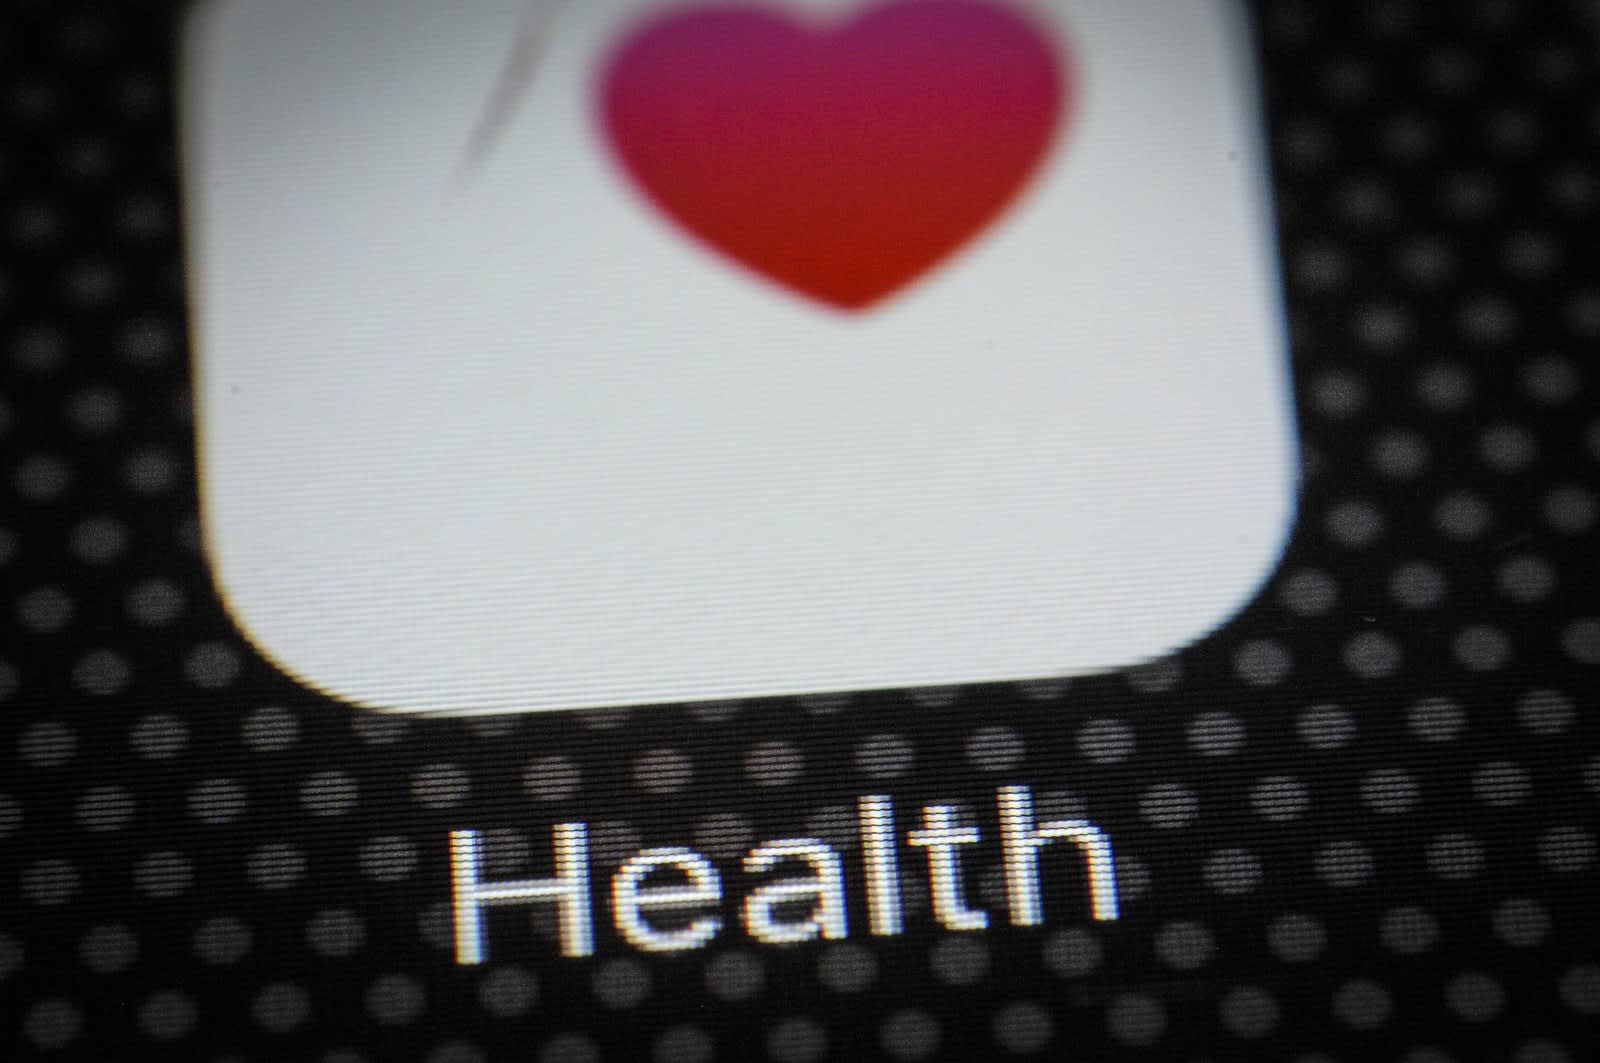 Apple Health app data used as evidence in rape investigation